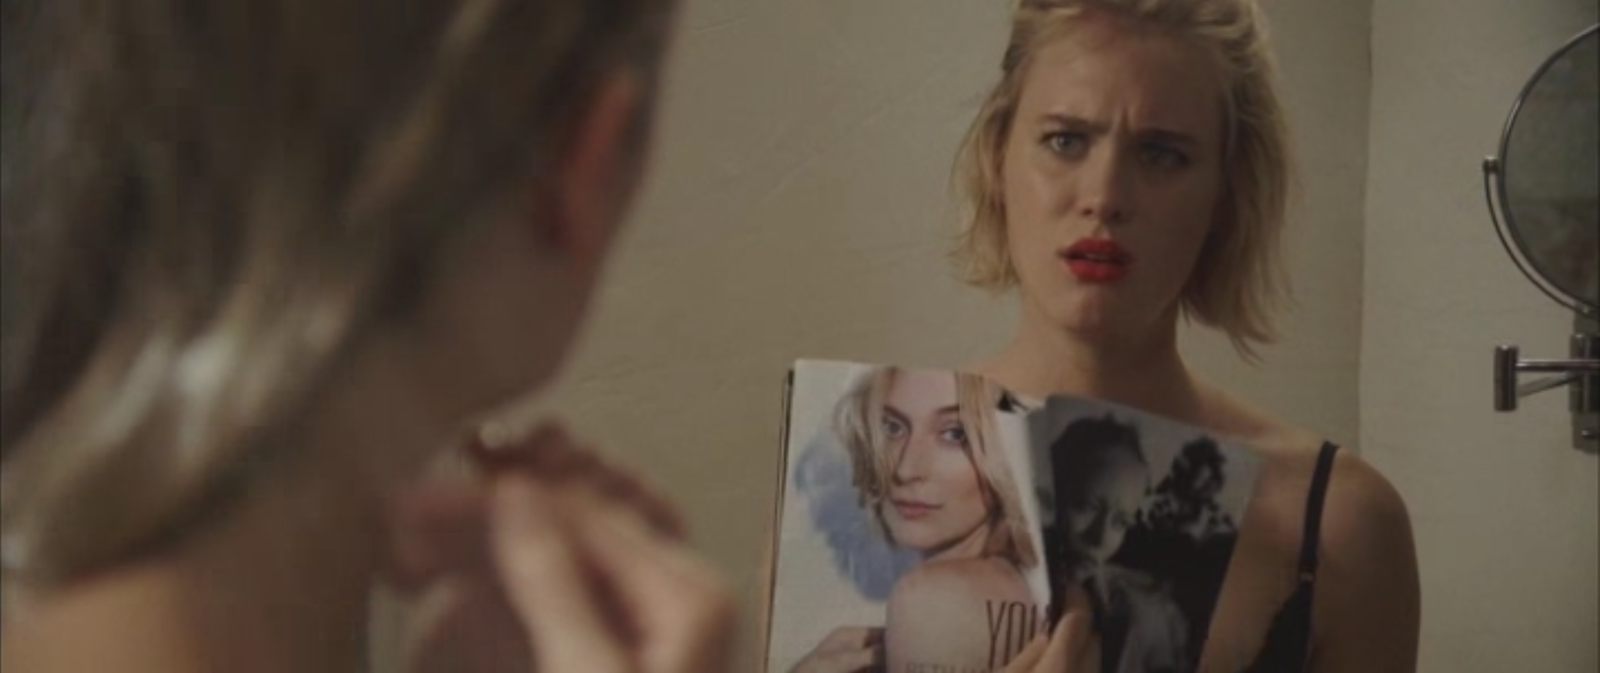 Anna (Davis) holds up a copy of the Young Hollywood edition of a magazine, in which Beth (FitzGerald) is featured.